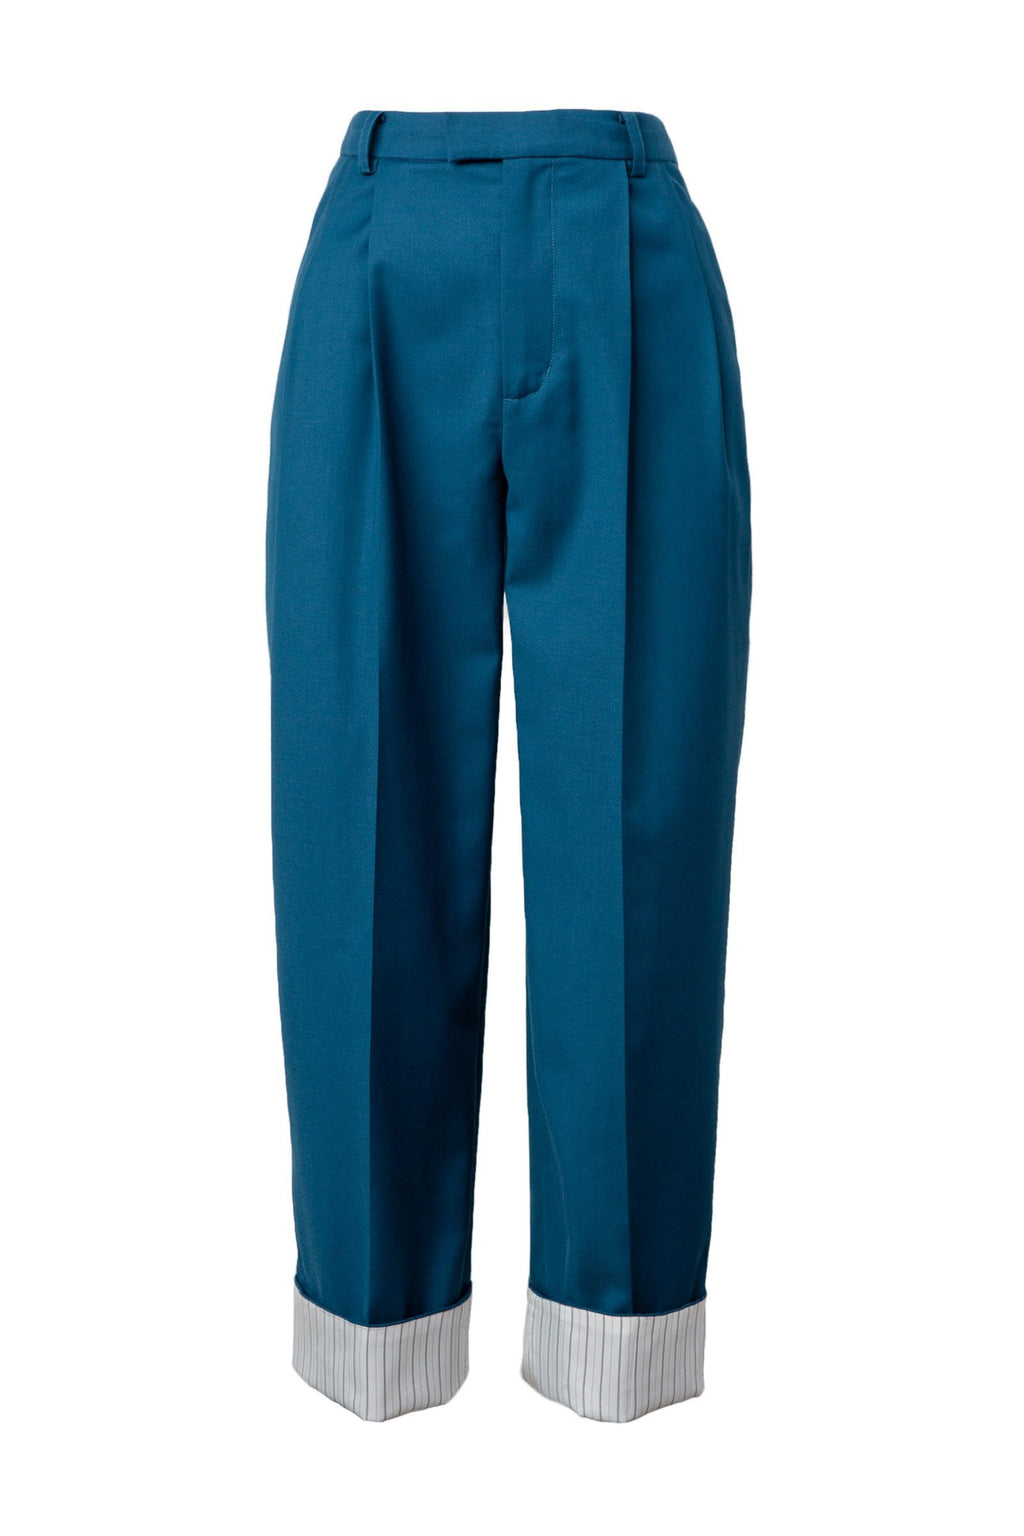 Josie Pants by J.ING Women's Pants